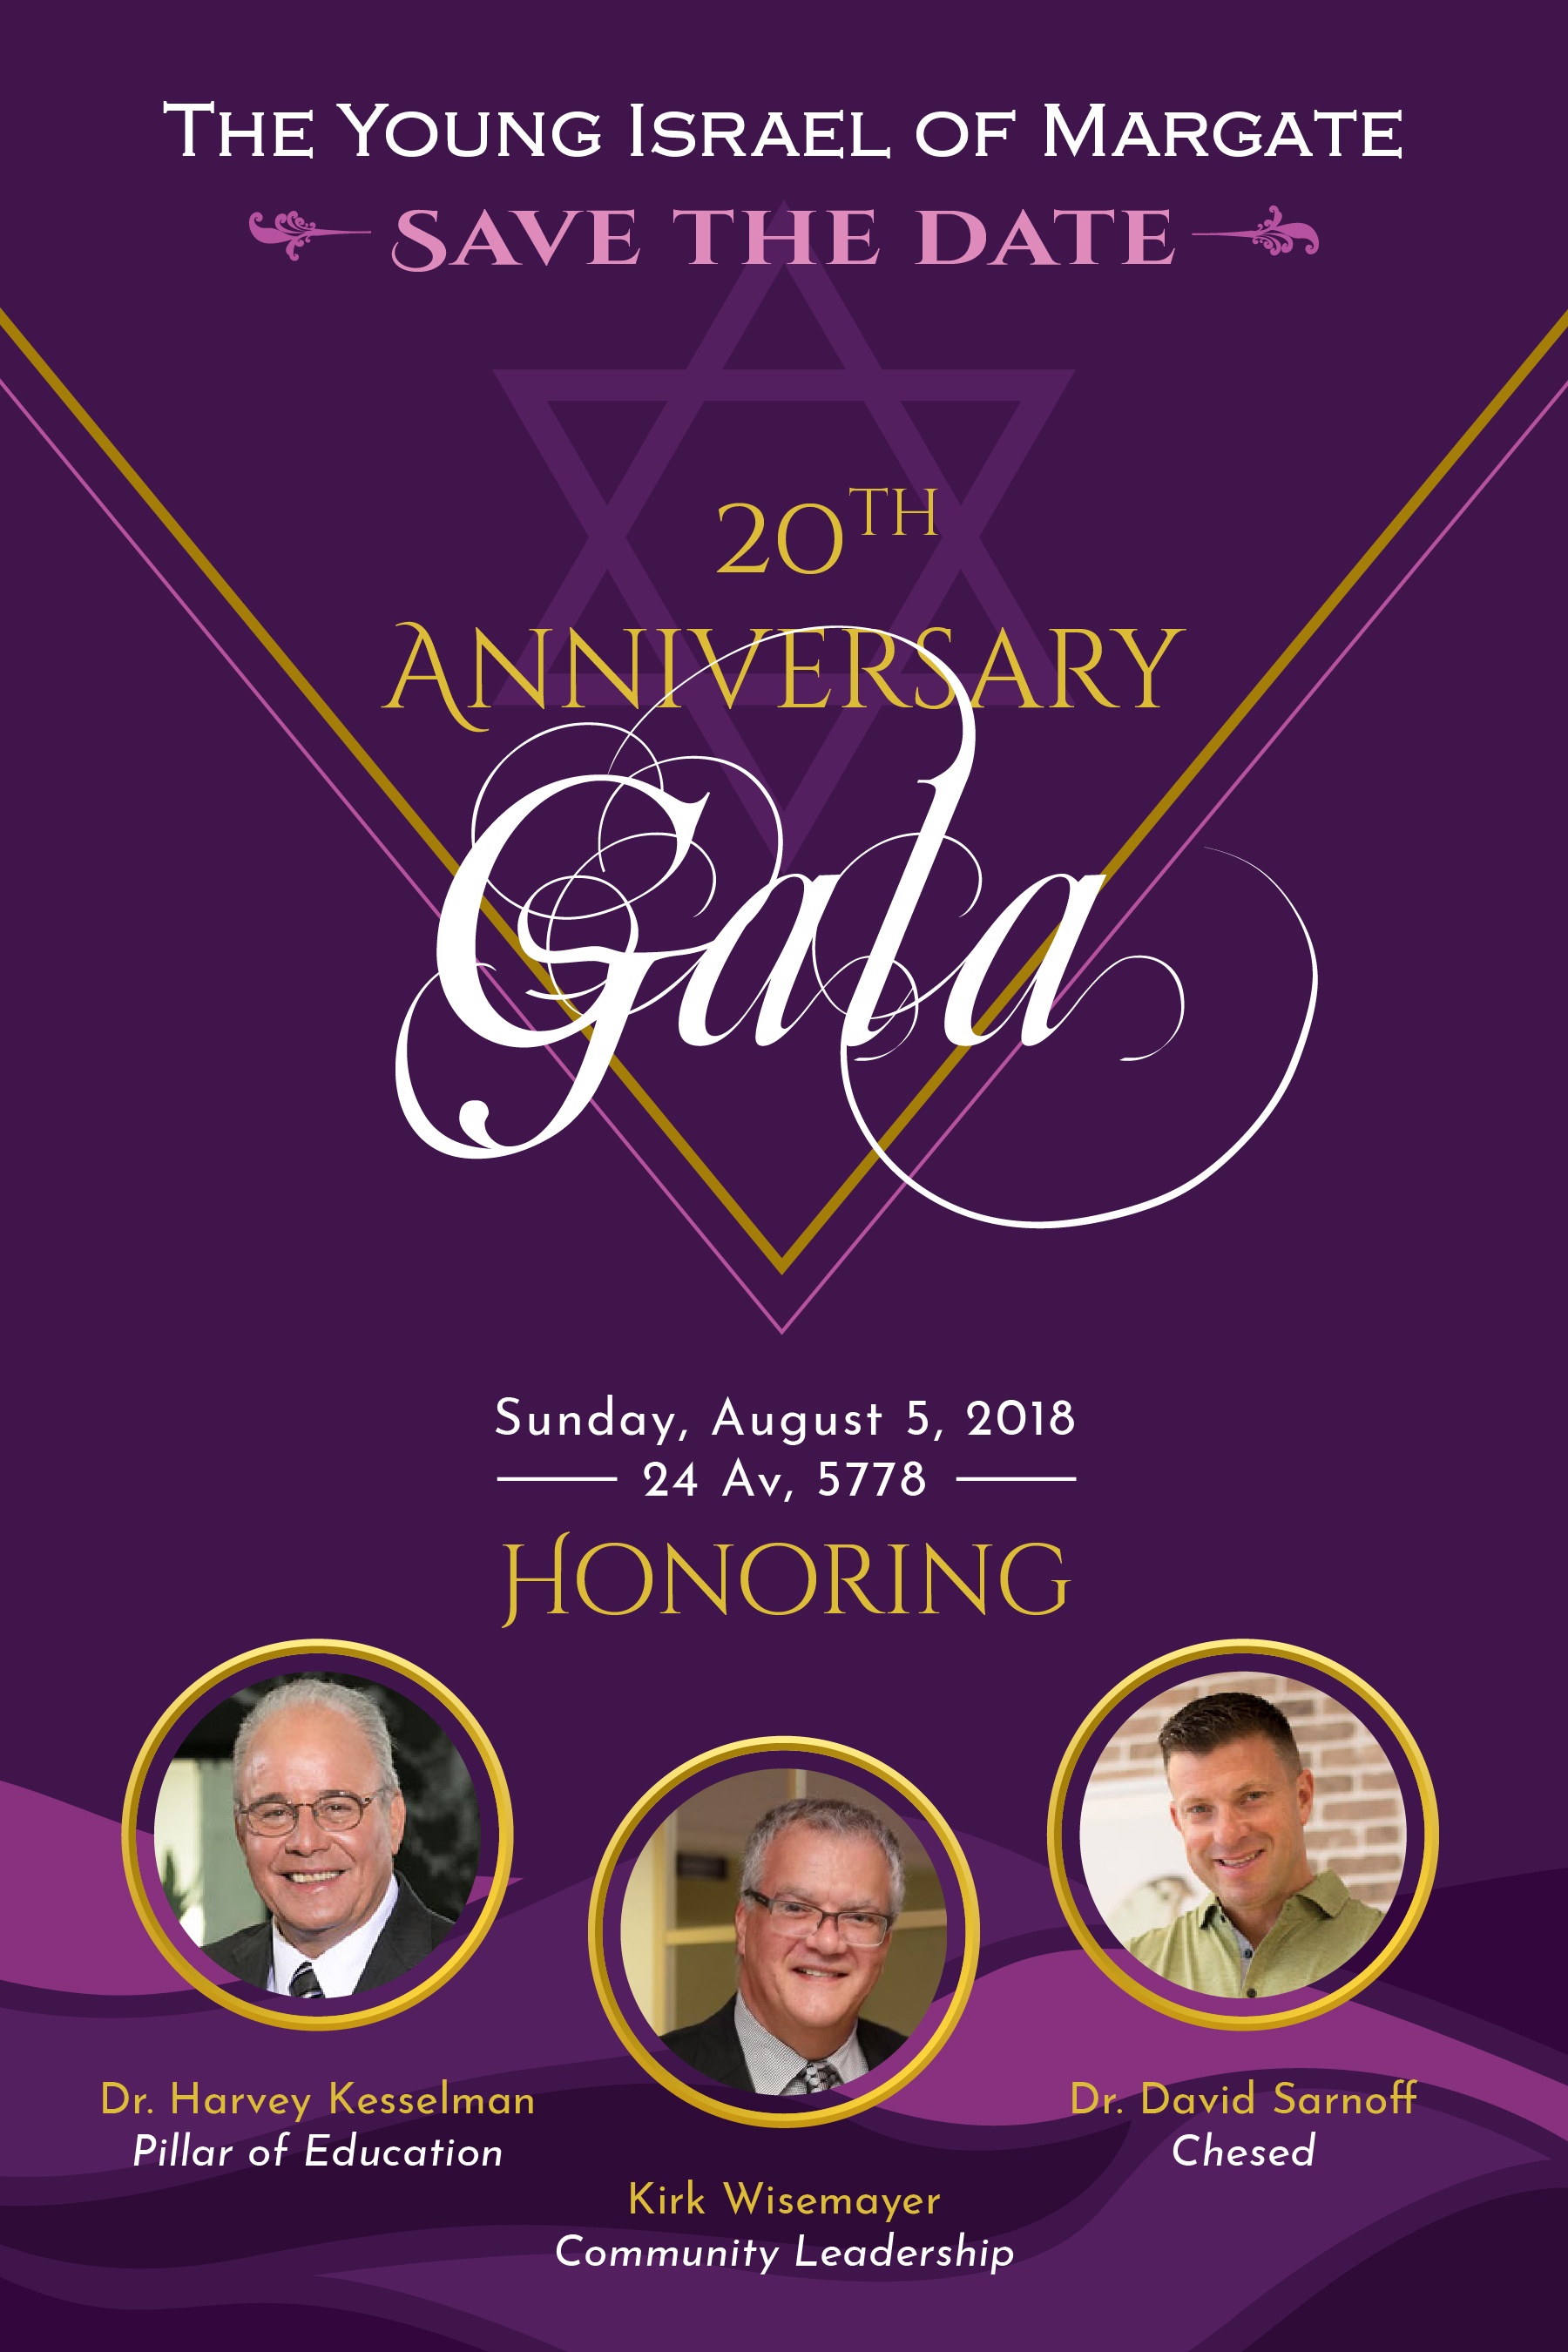 Save the Date for the Young Israel of Margate's 20th Anniversary Gala on August 5th, 2018